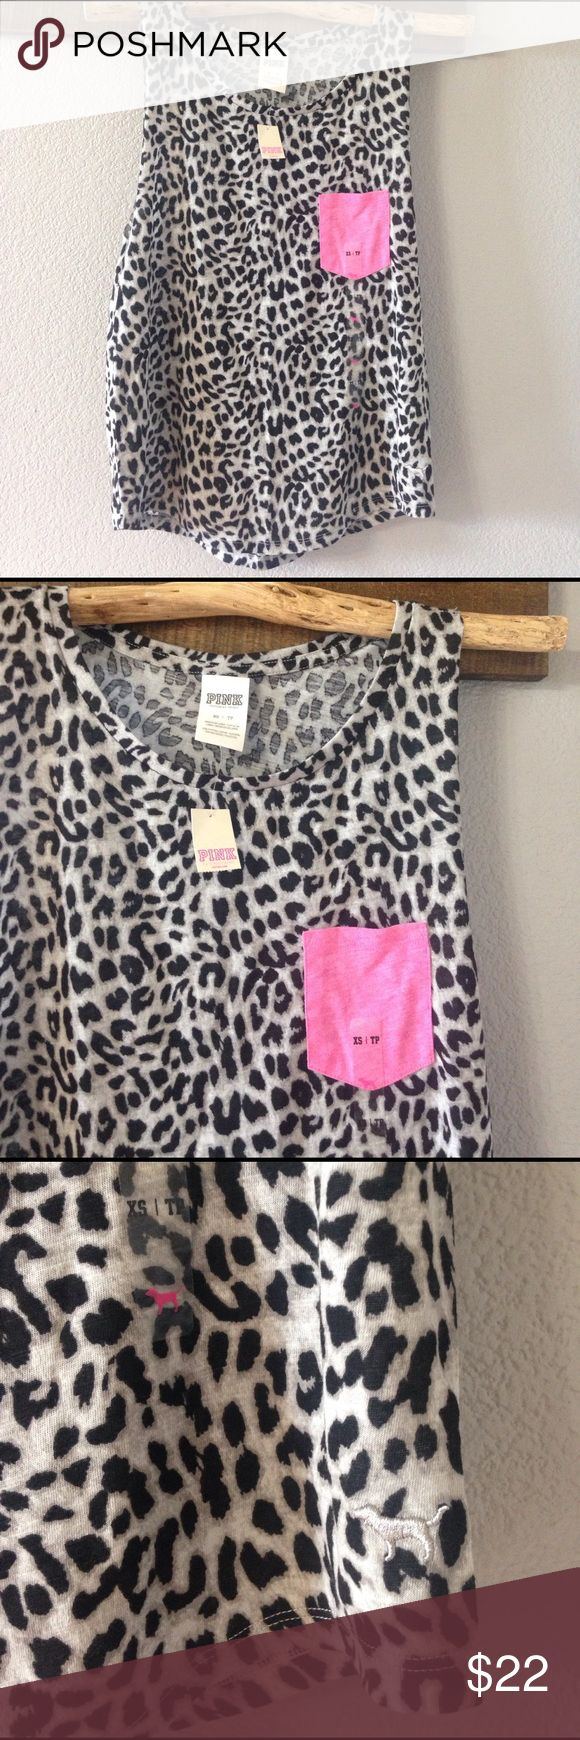 NWT PINK Victoria's Secret cheetah print tank top NWT PINK Victoria's Secret SASSY basic every day muscle shirt with animal cheetah print tank top with pocket & dog logo on hip. color: Gray & black with pink pocket. 60% cotton & 40% polyester. Size XSShips same day of purchase. PINK Victoria's Secret Tops Muscle Tees